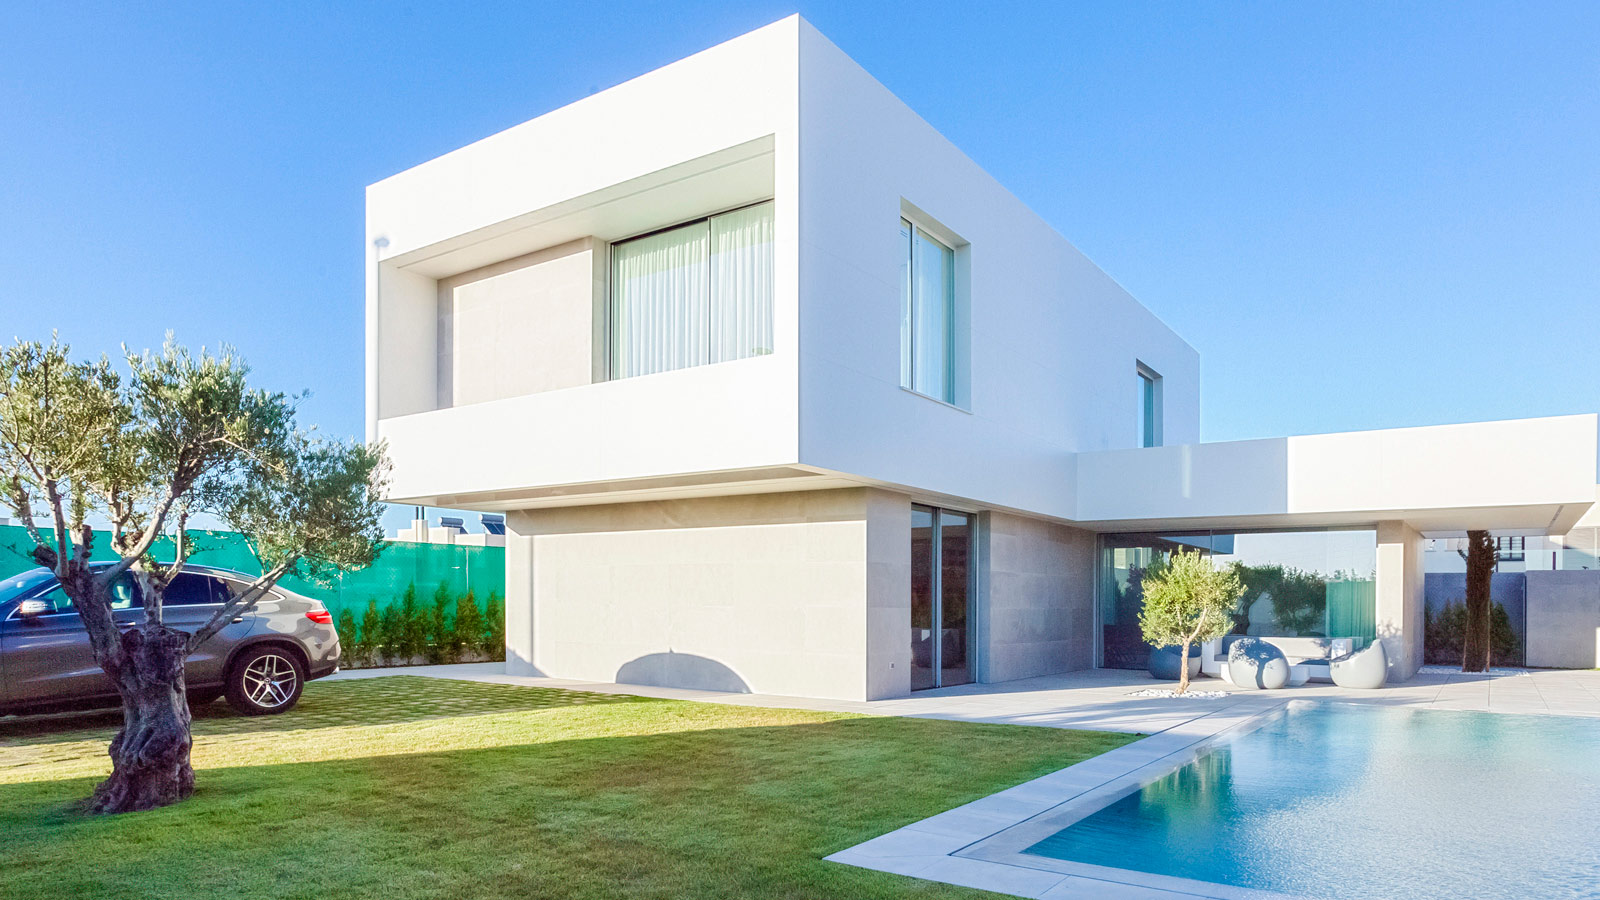 PORCELANOSA Grupo Project: An architectural review of the white villages in Jerez de la Frontera